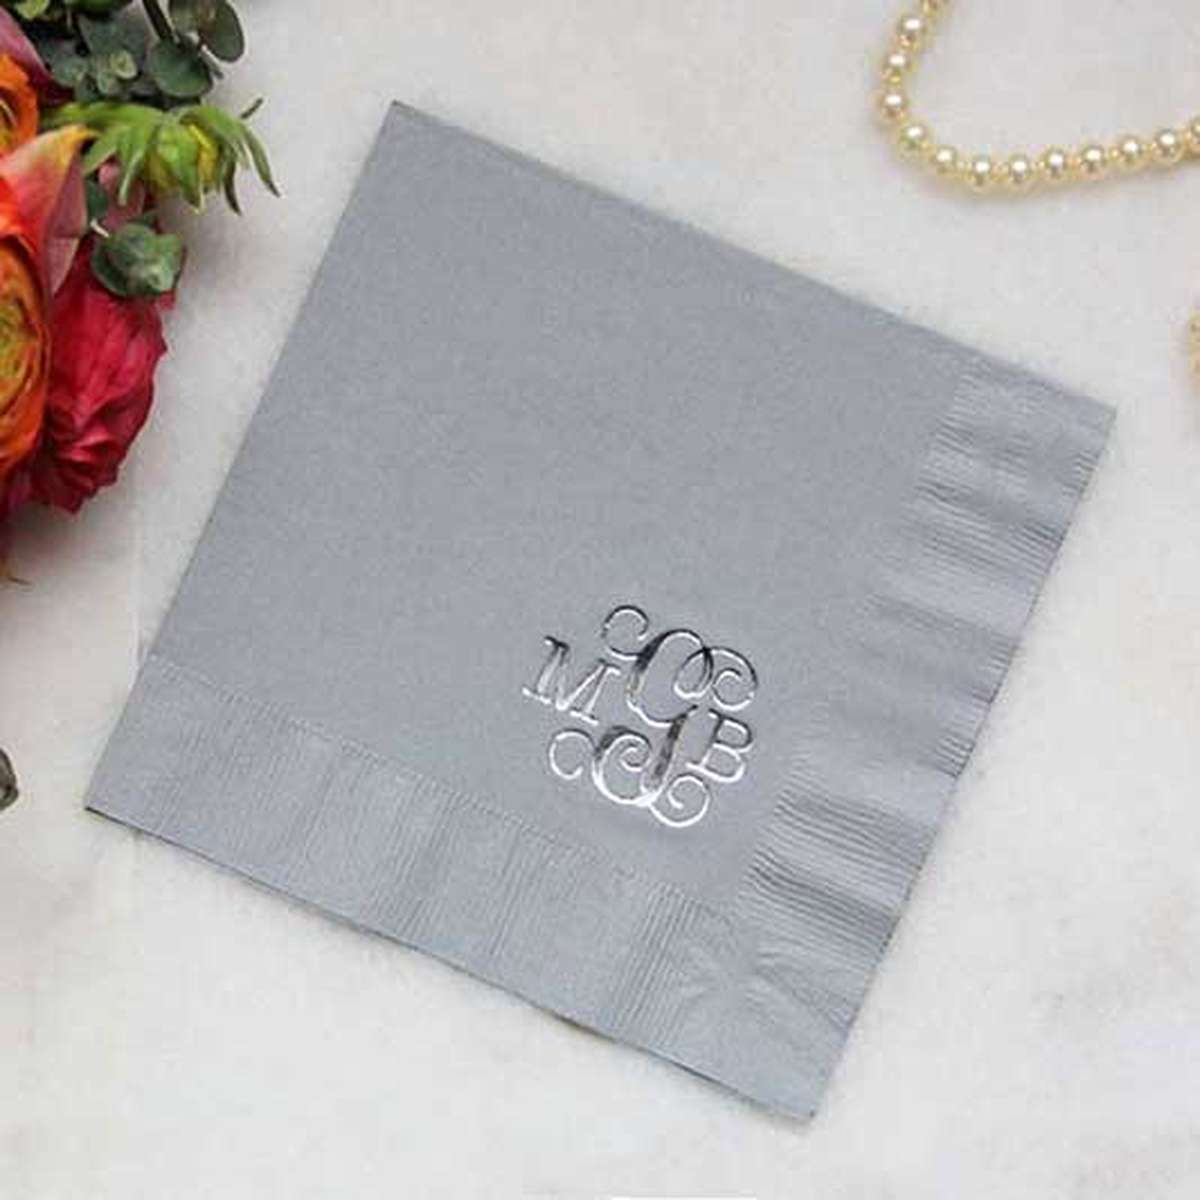 personalized luncheon brunch napkins